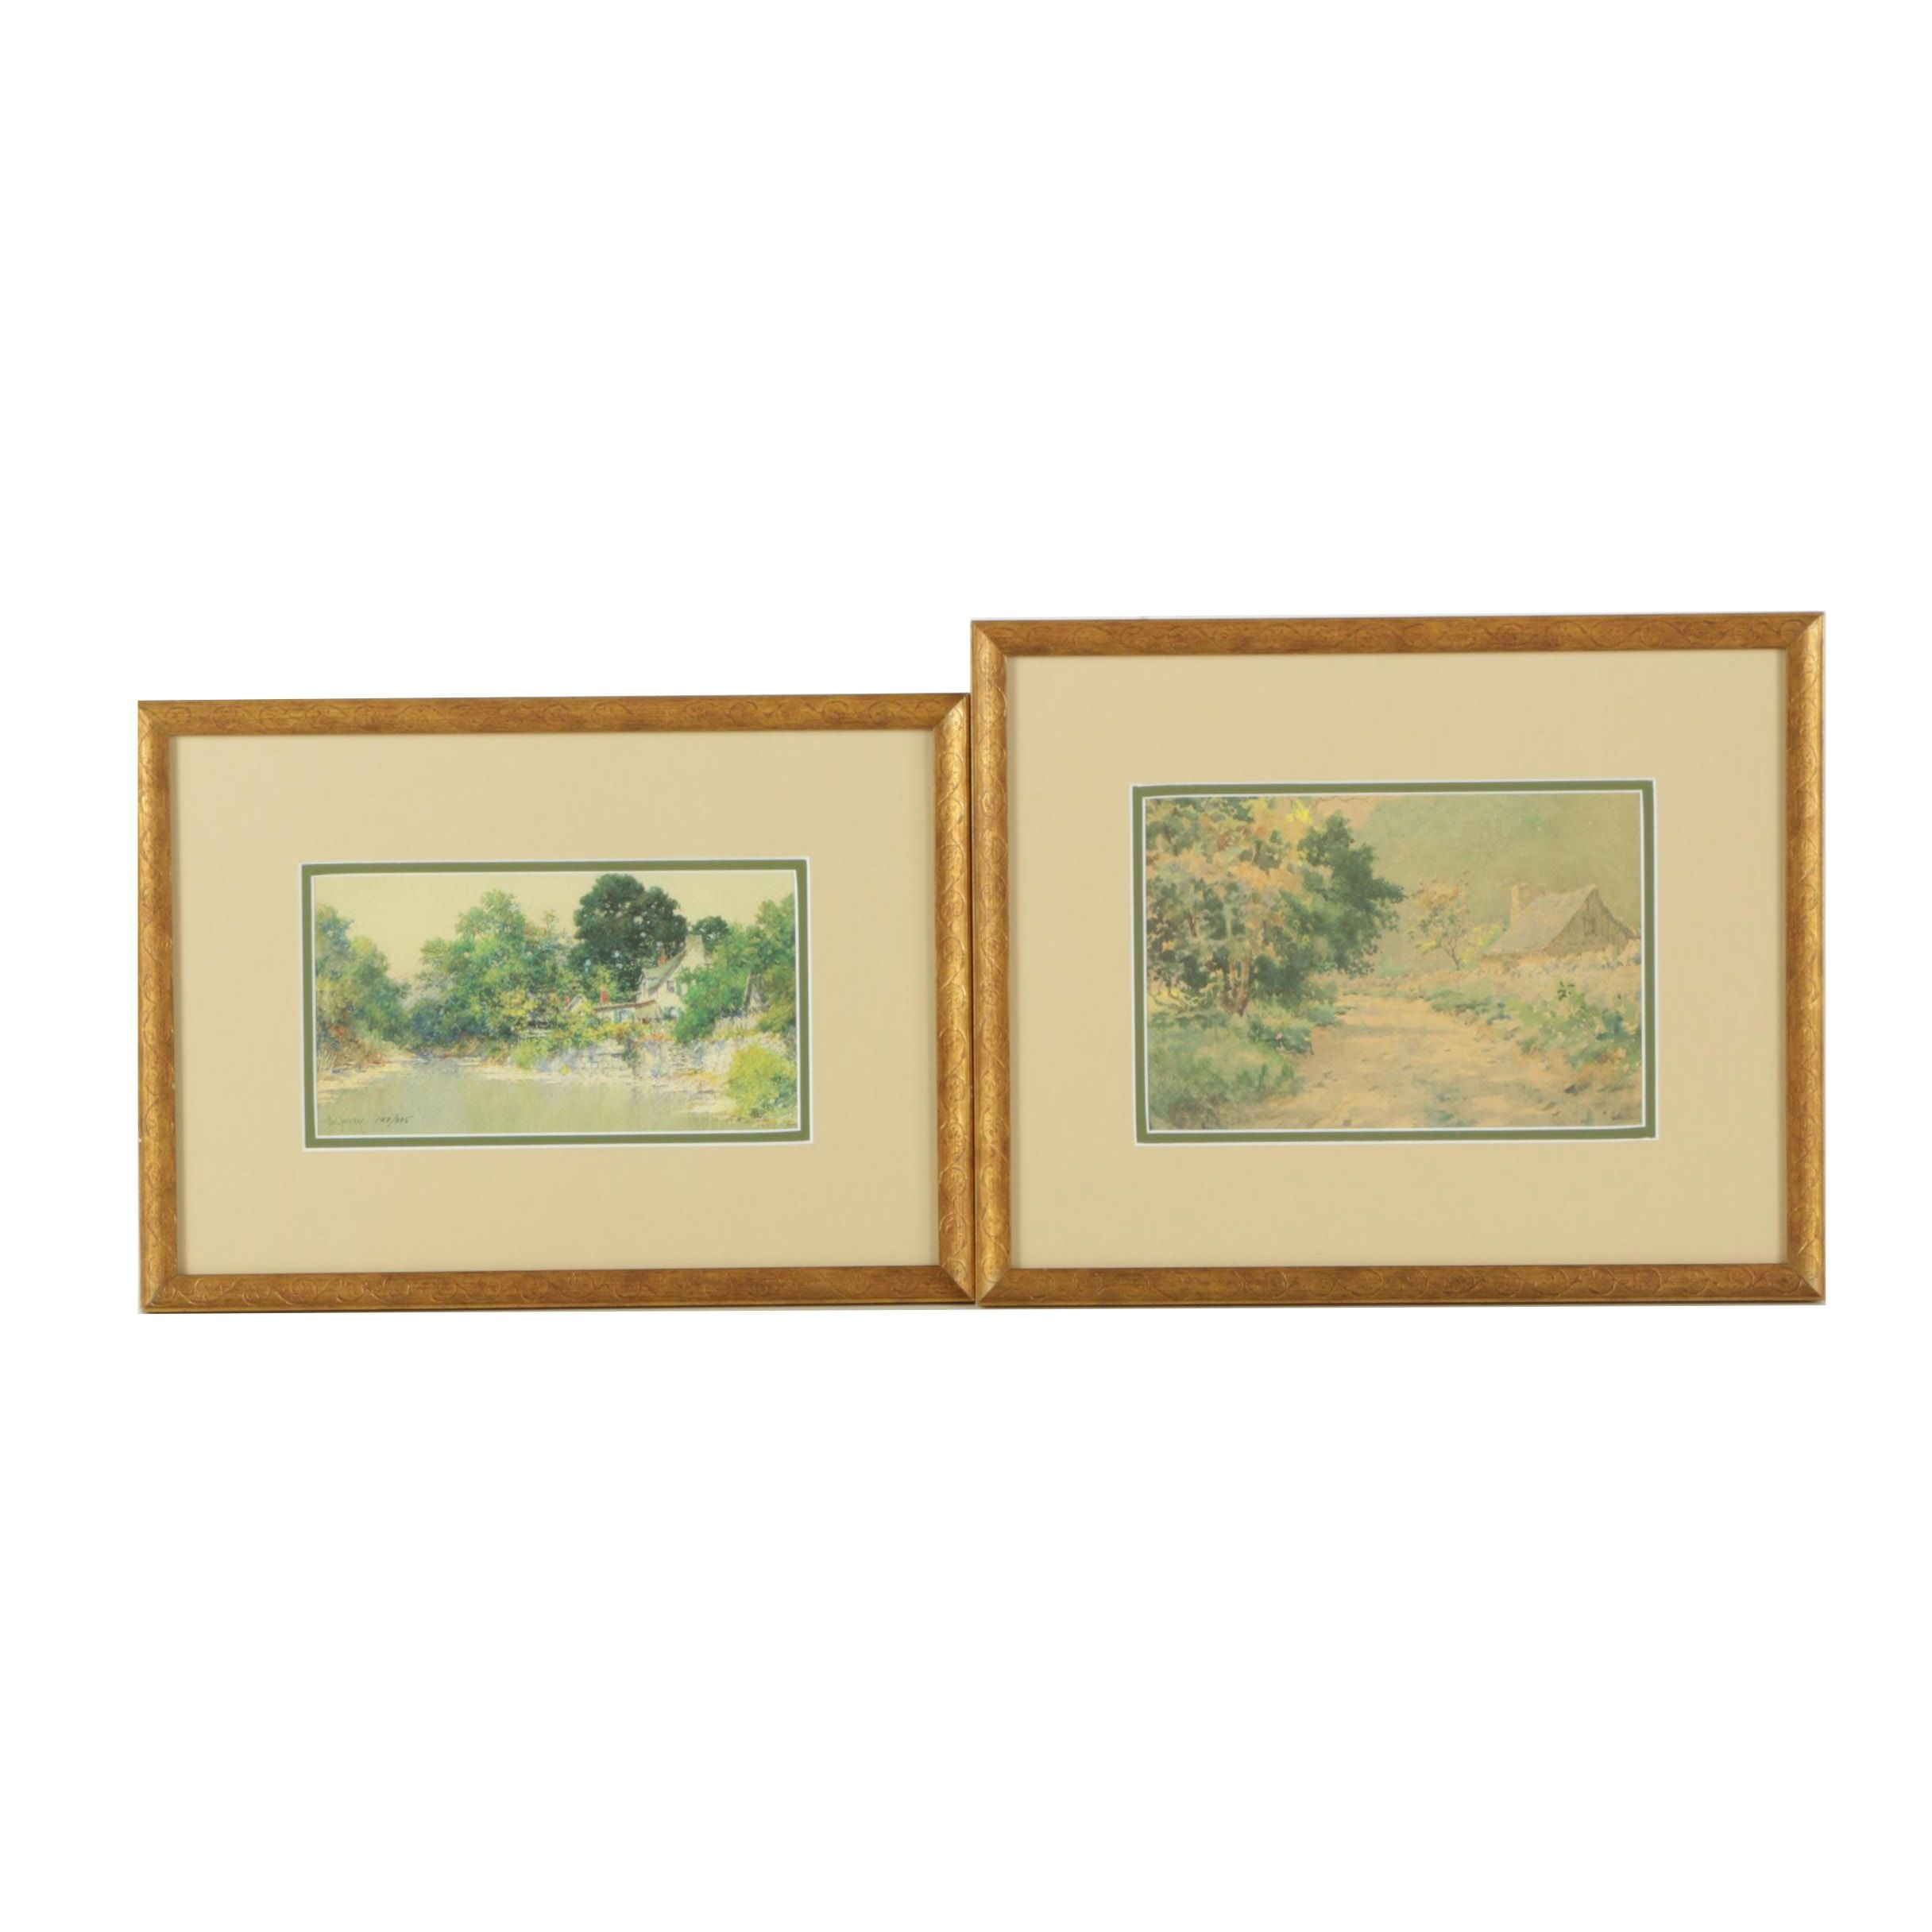 Pair of Offset Lithographs After Paul Sawyier